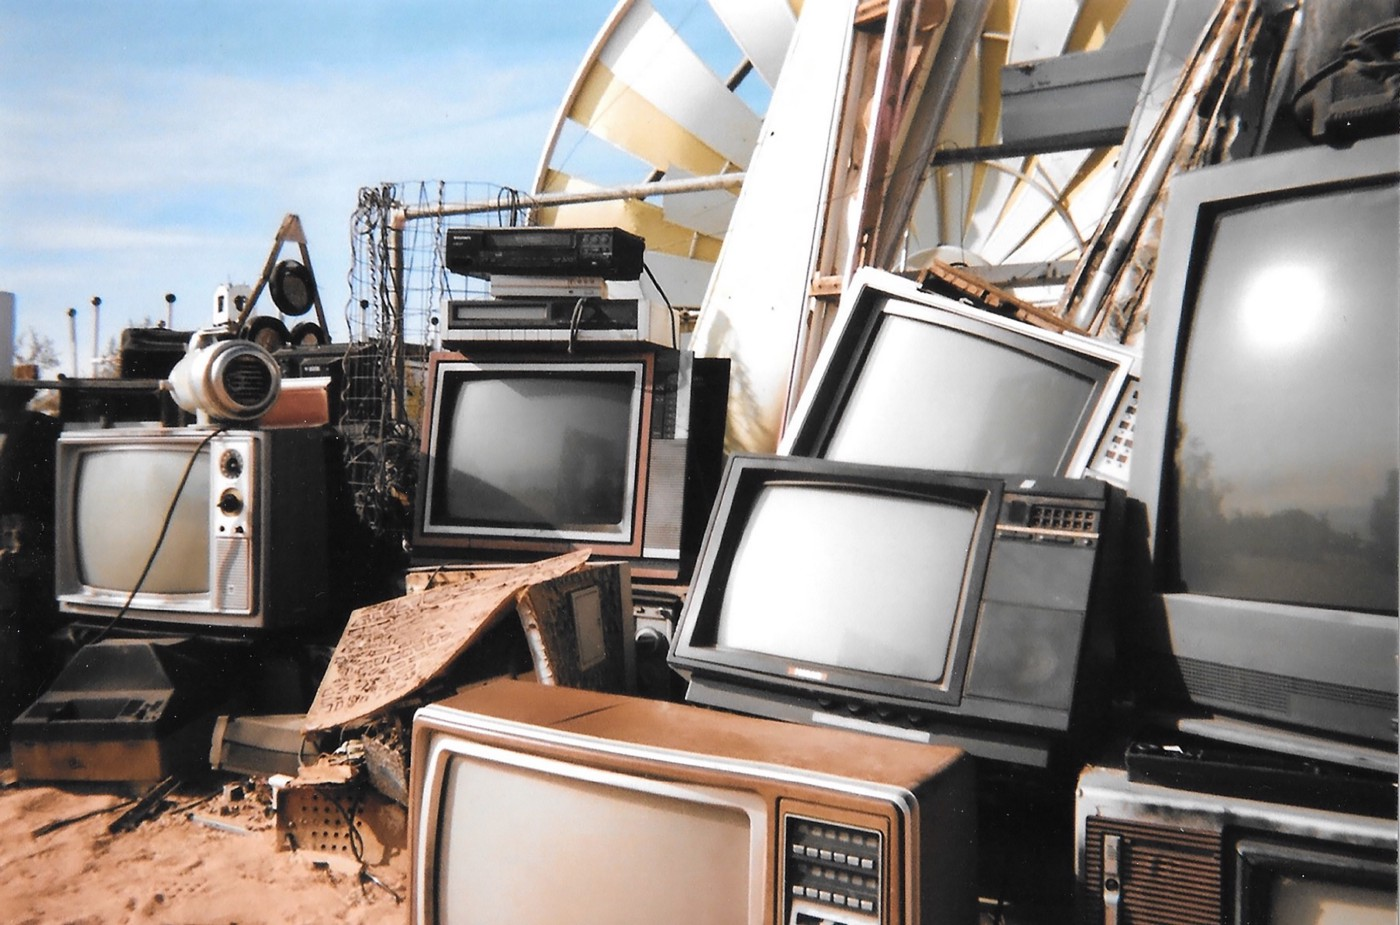 Pile of old televisions.